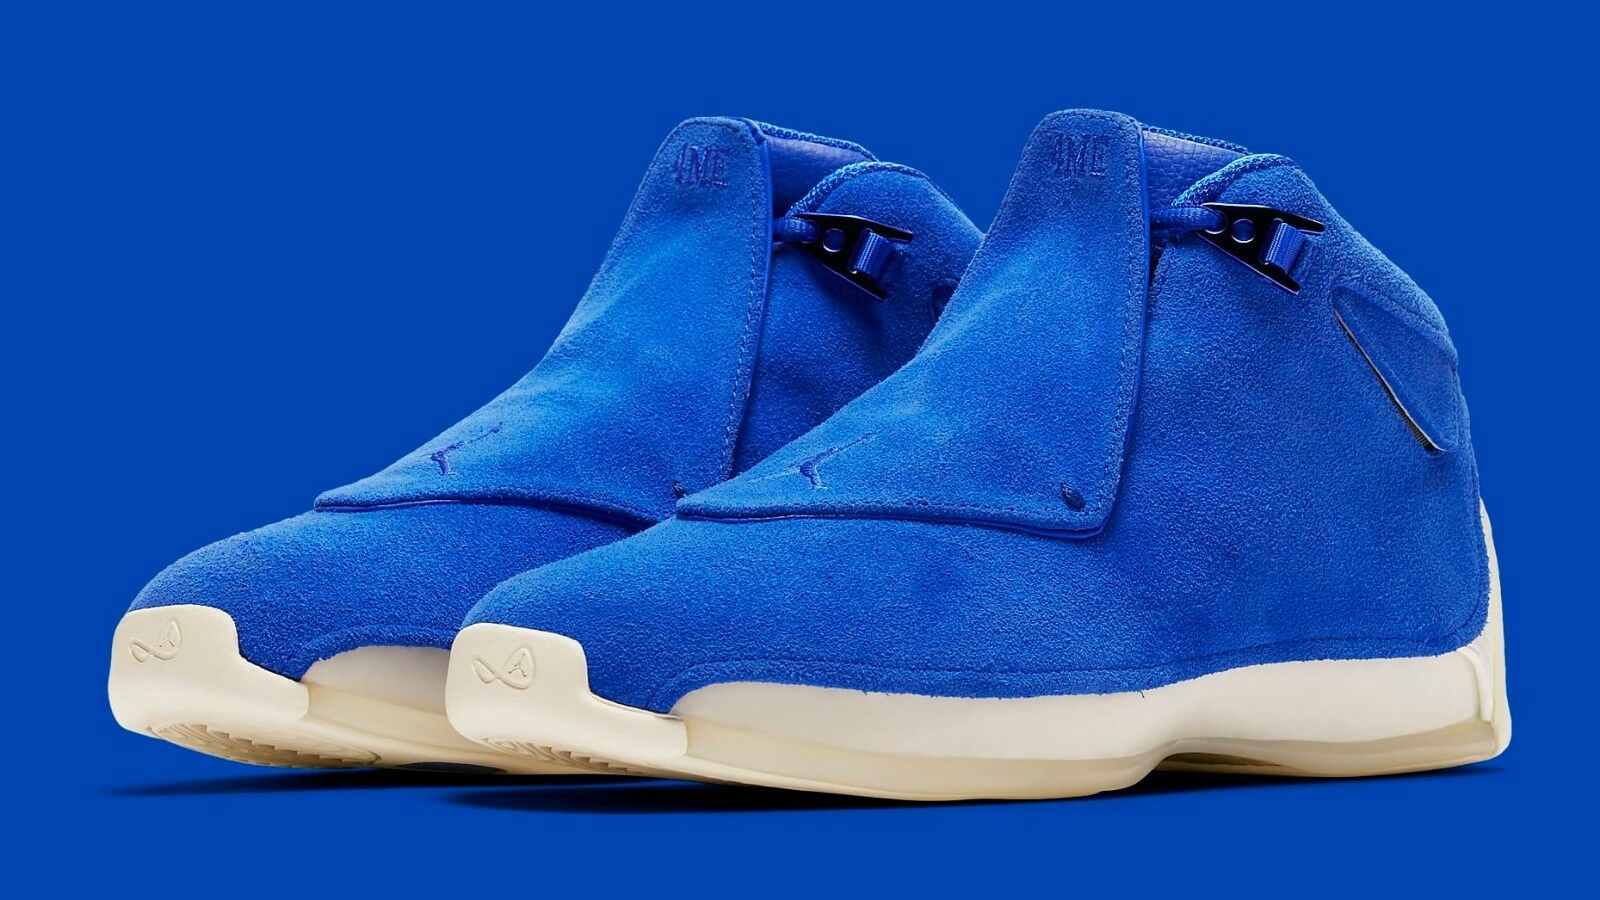 AIR JORDAN 18 RETRO  bluee Suede  AA2494-401 Racer bluee Sail Men's Size NOW